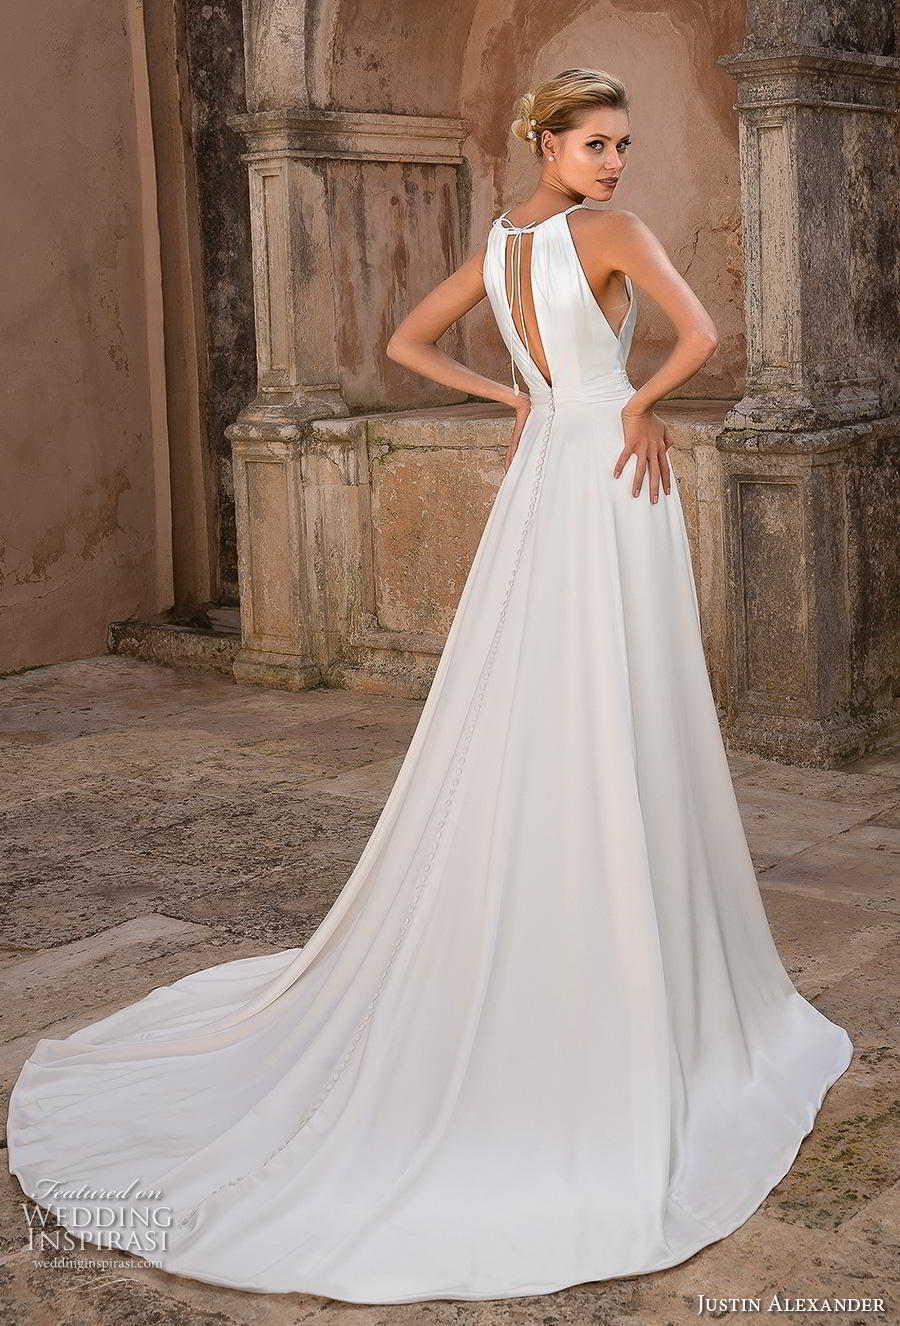 justin alexander spring 2019 bridal halter neck keyhole neckline simple elegant grecian modified a line wedding dress keyhole back chapel train (15) bv